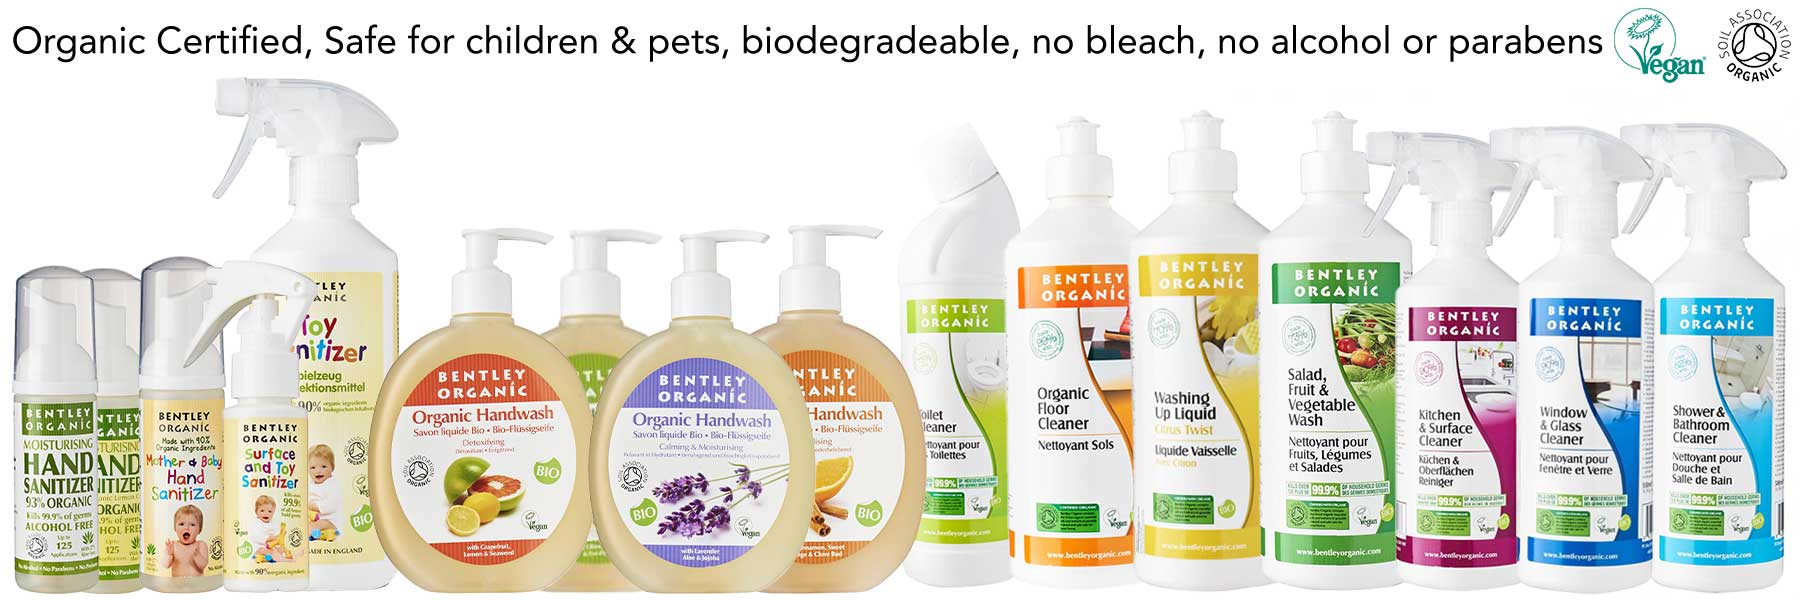 Bentley Organic Sanitisers and Home Cleaners - Safe for Babies and Pets No Alcohol, Bleach, Parabens, SLS/SLES, Vegan